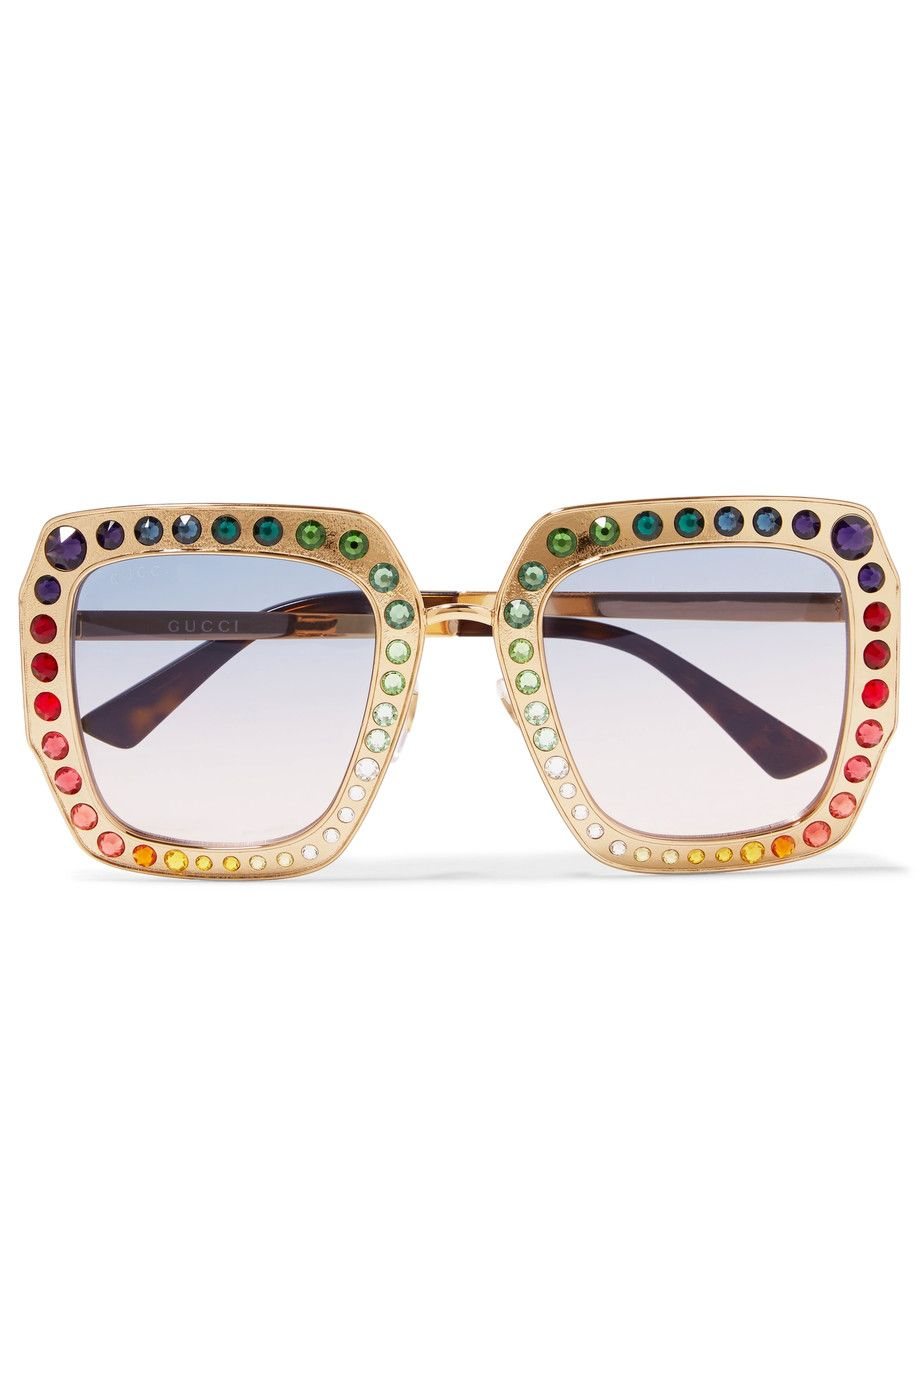 ce6965a38a Gucci - Crystal-embellished square-frame gold-tone sunglasses ...